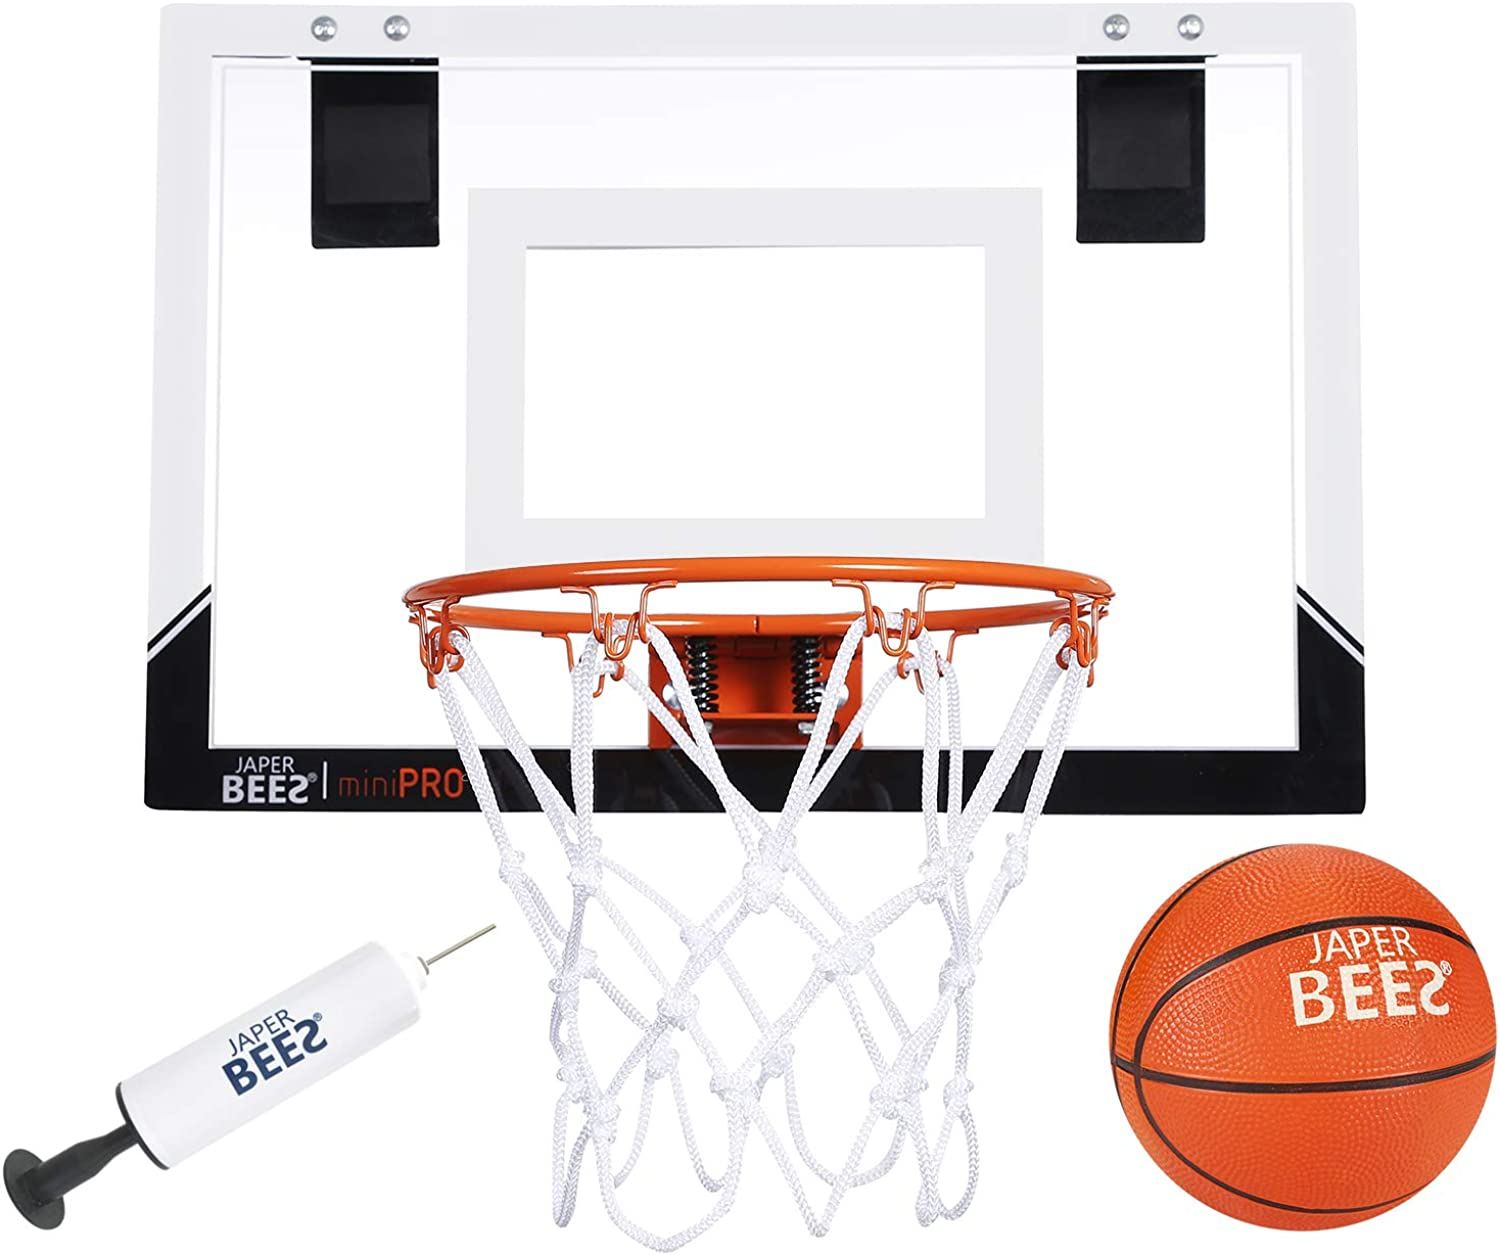 JAPER BEES Indoor Mini Basketball Hoop Over The Door & Wall Mount Indoor Basketball Hoop w/Shatterproof Backboard(Mini Pro) : Sports & Outdoors